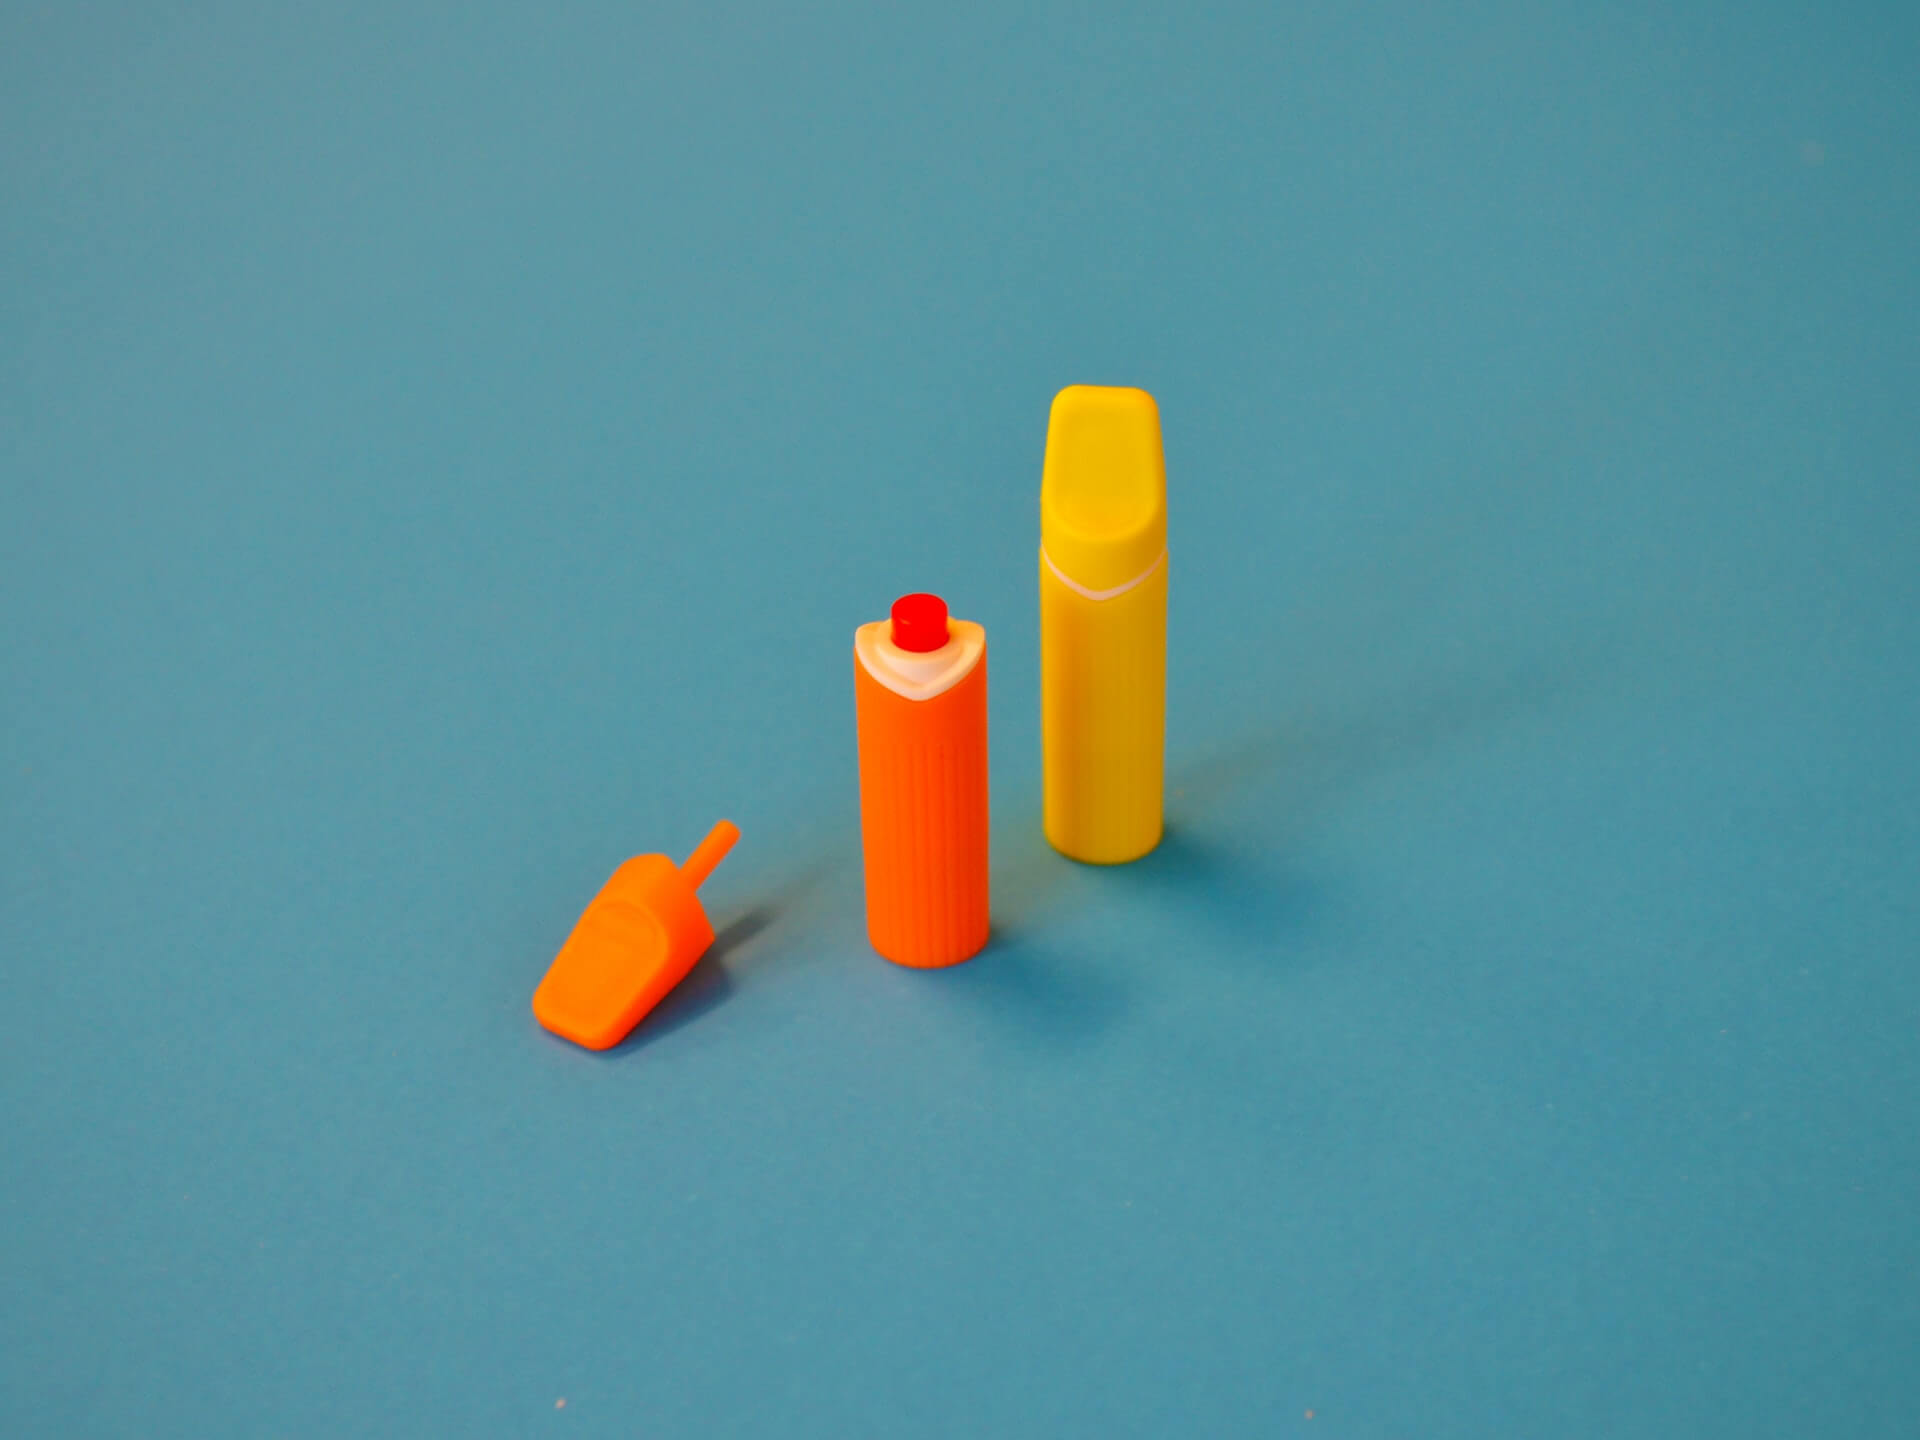 Lancets for sample blood collection